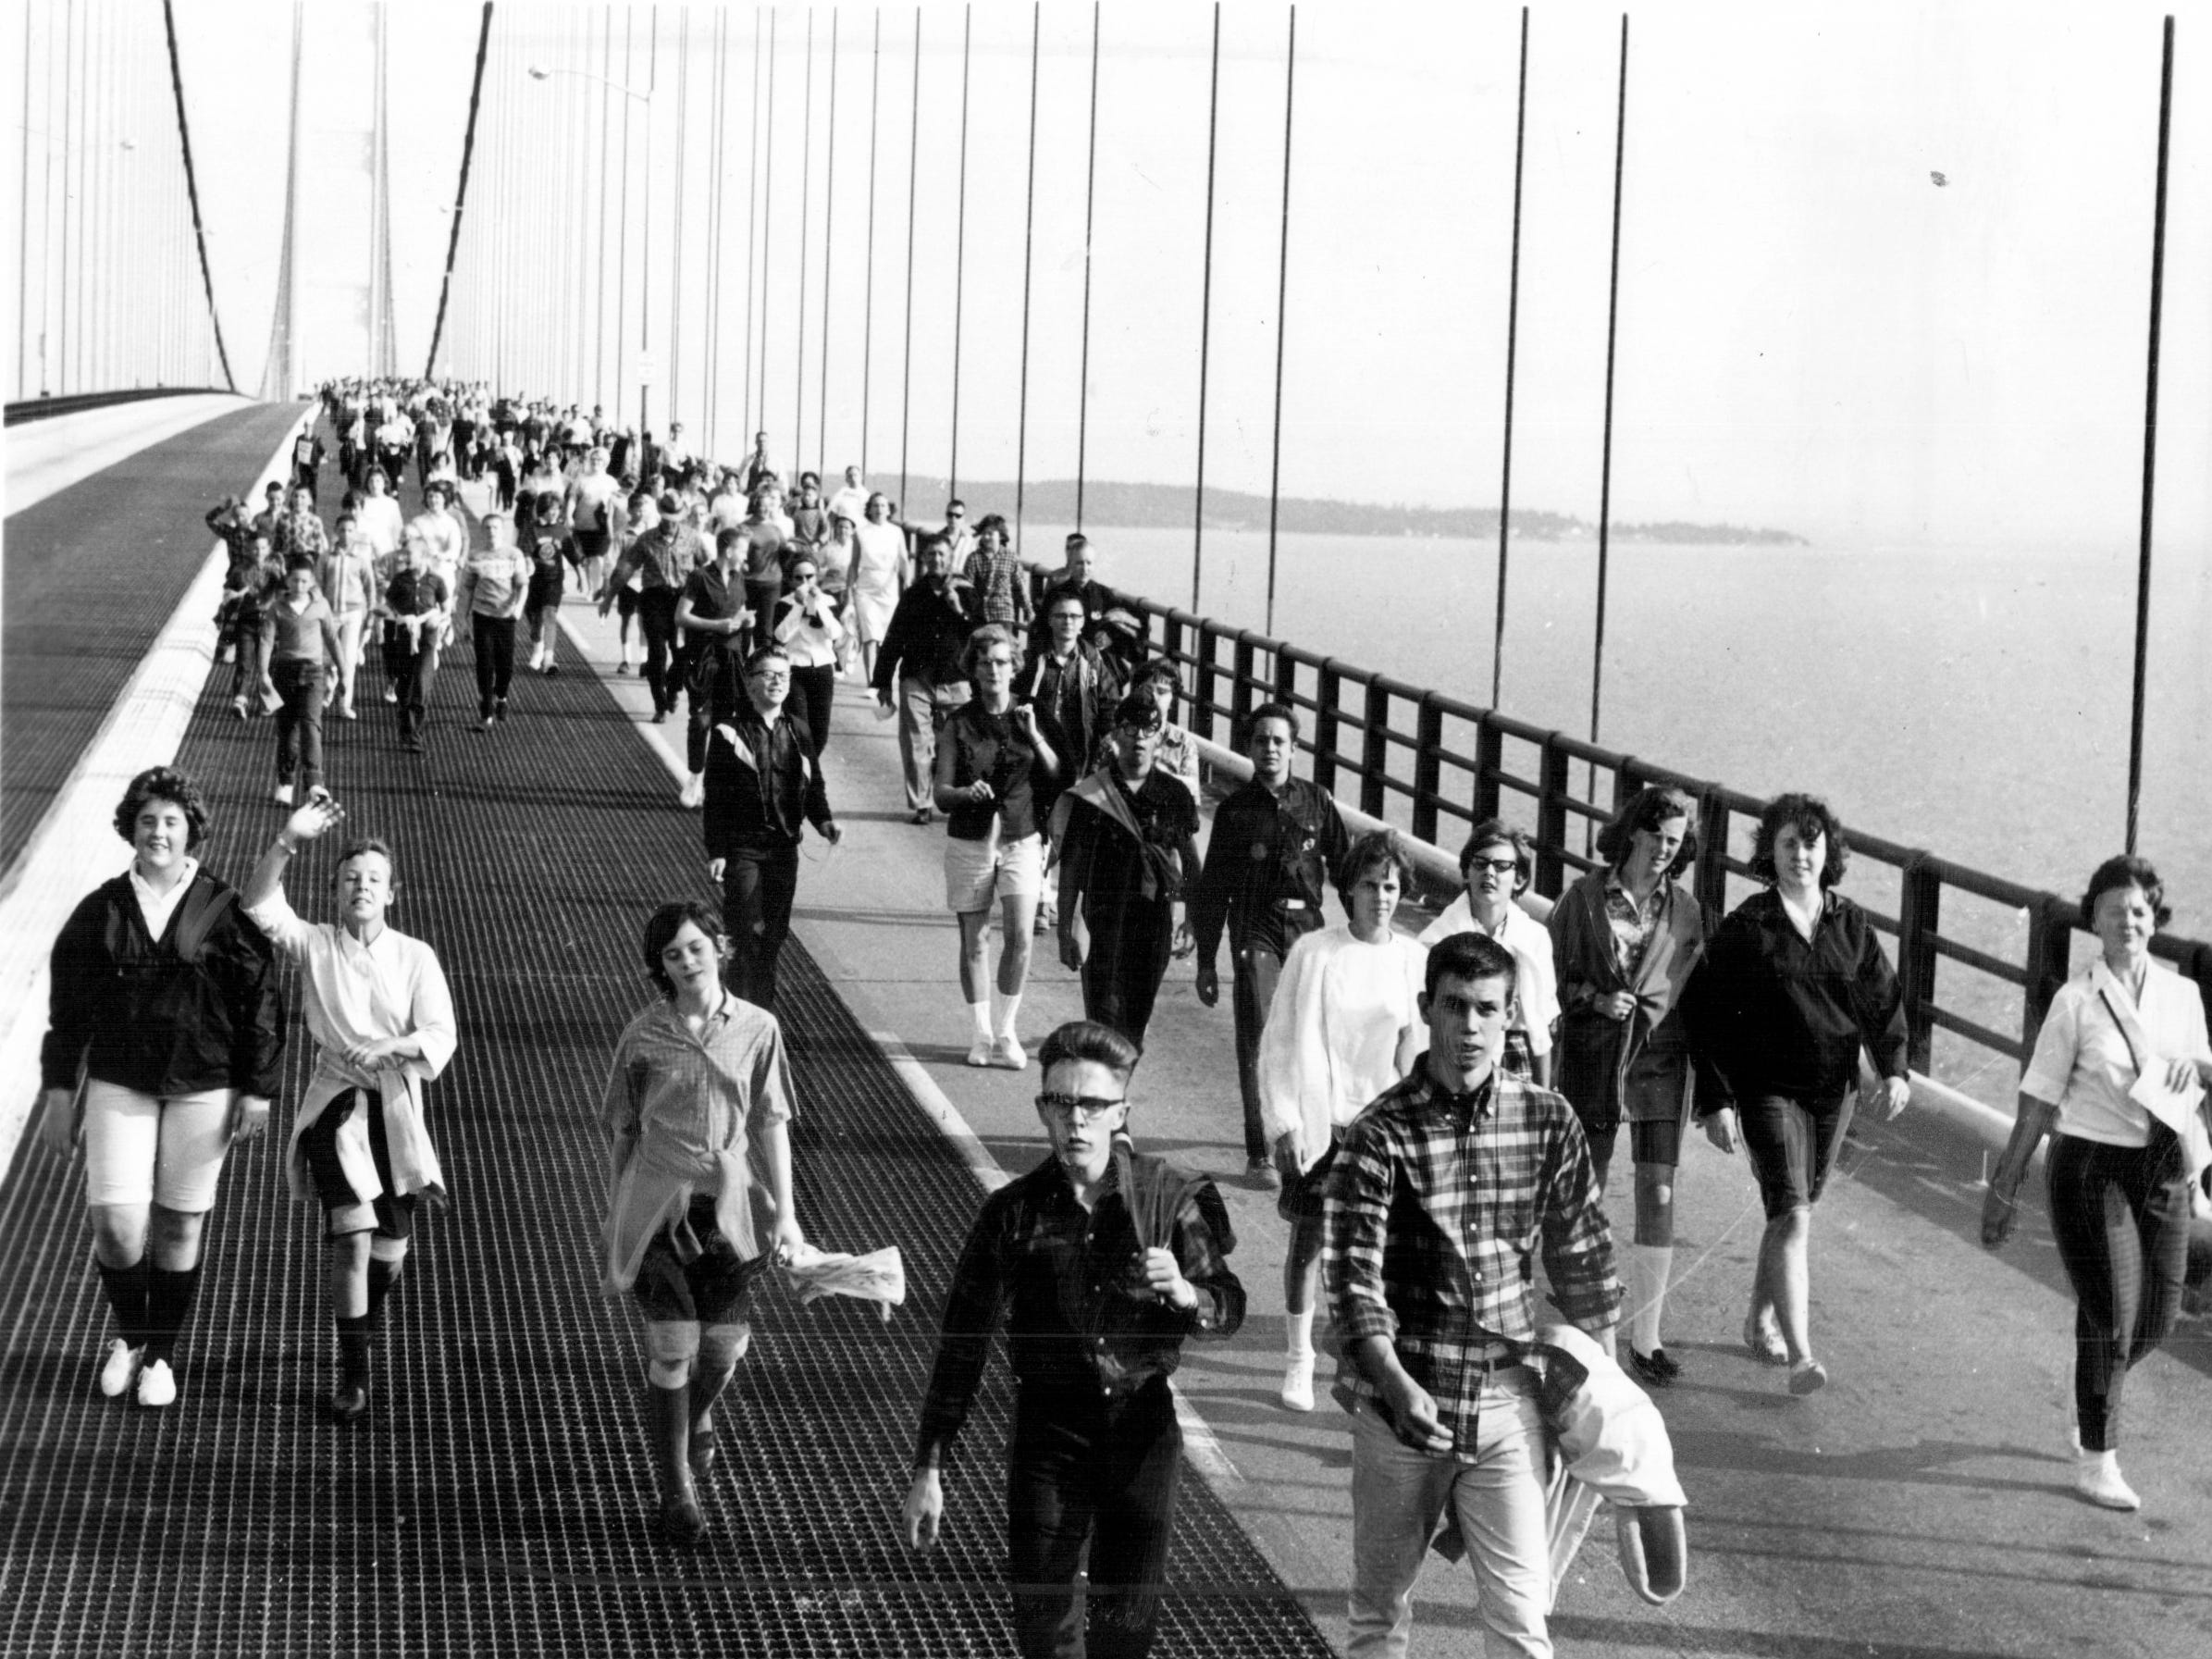 Normally, pedestrians are not allowed on the Mackinac Bridge, the 4 ½ - mile kink between Michigan's Upper and Lower Peninsulas. But it's a different story each Labor Day when the bridge is opened to hikers. More than 10,000 are expected to walk across Mighty Mac, from St. Ignace to Mackinaw City, beginning at 8:30 a.m. Labor Day. Shown here are a few of the 9000 persons who took part in 1964. Certificates are given to all who complete the walk.